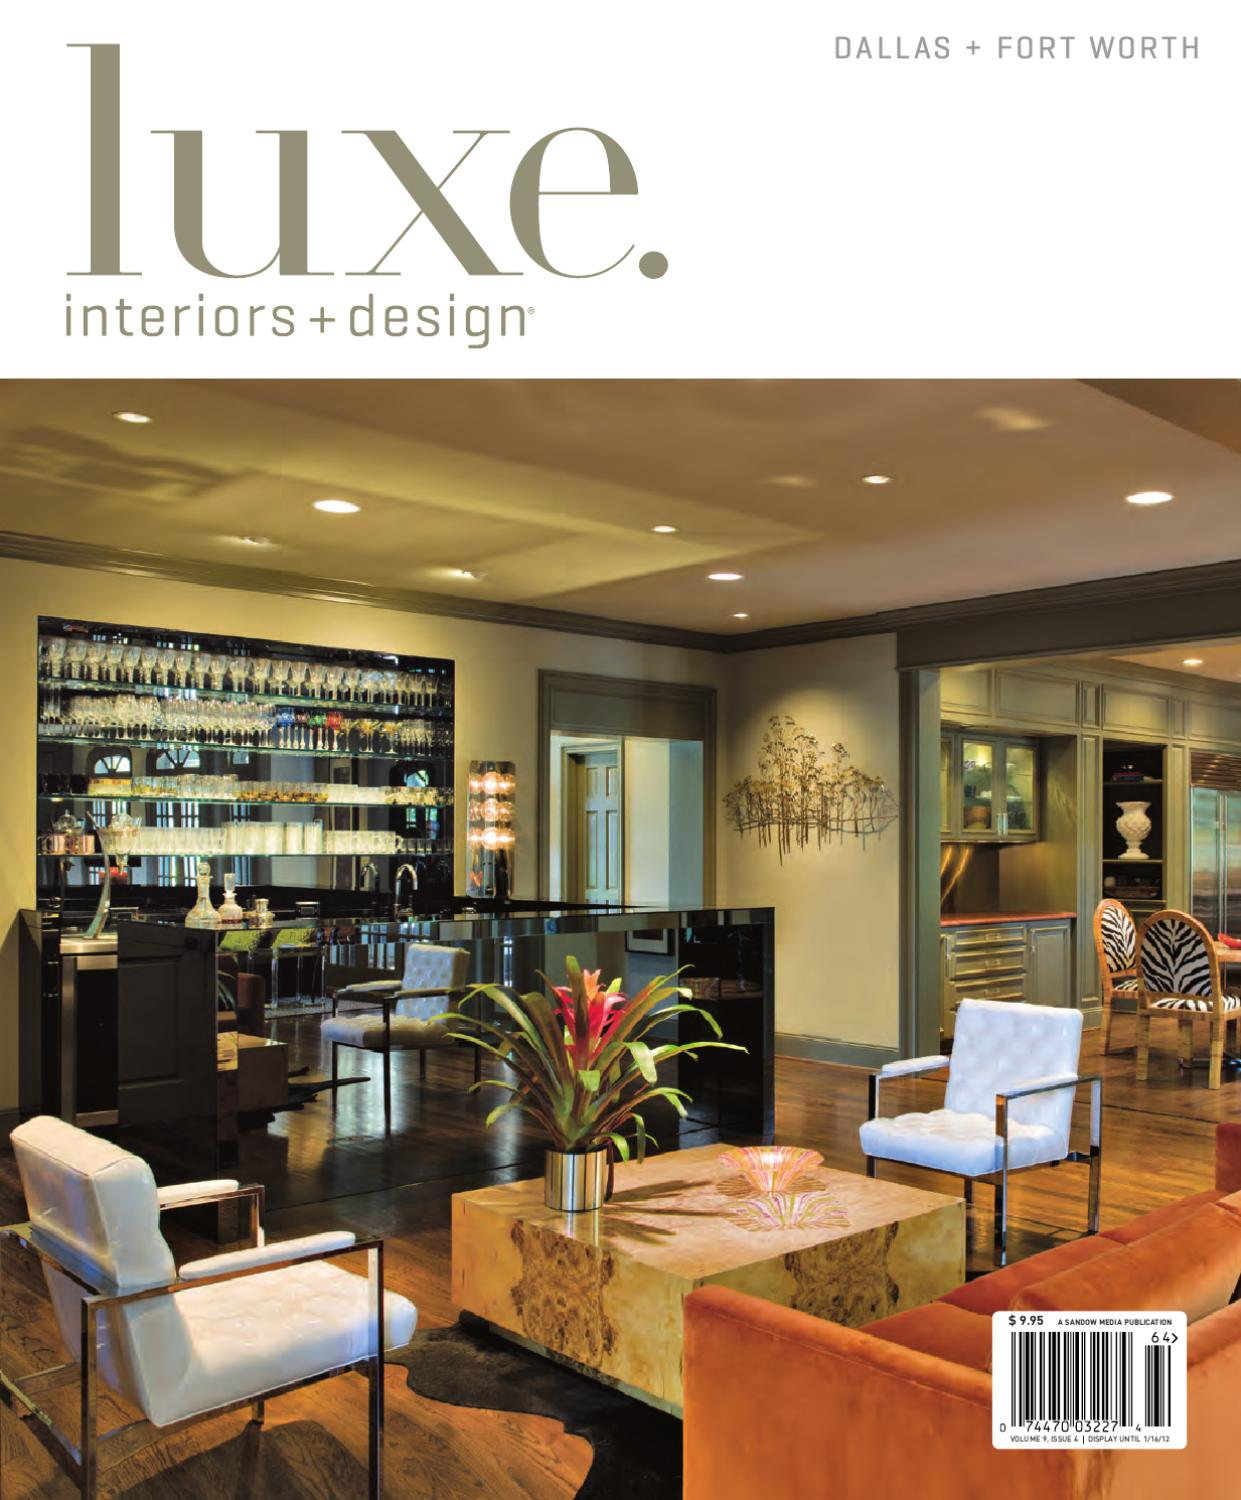 LUXE Interiors Design Dallas 20 By Sandow Media